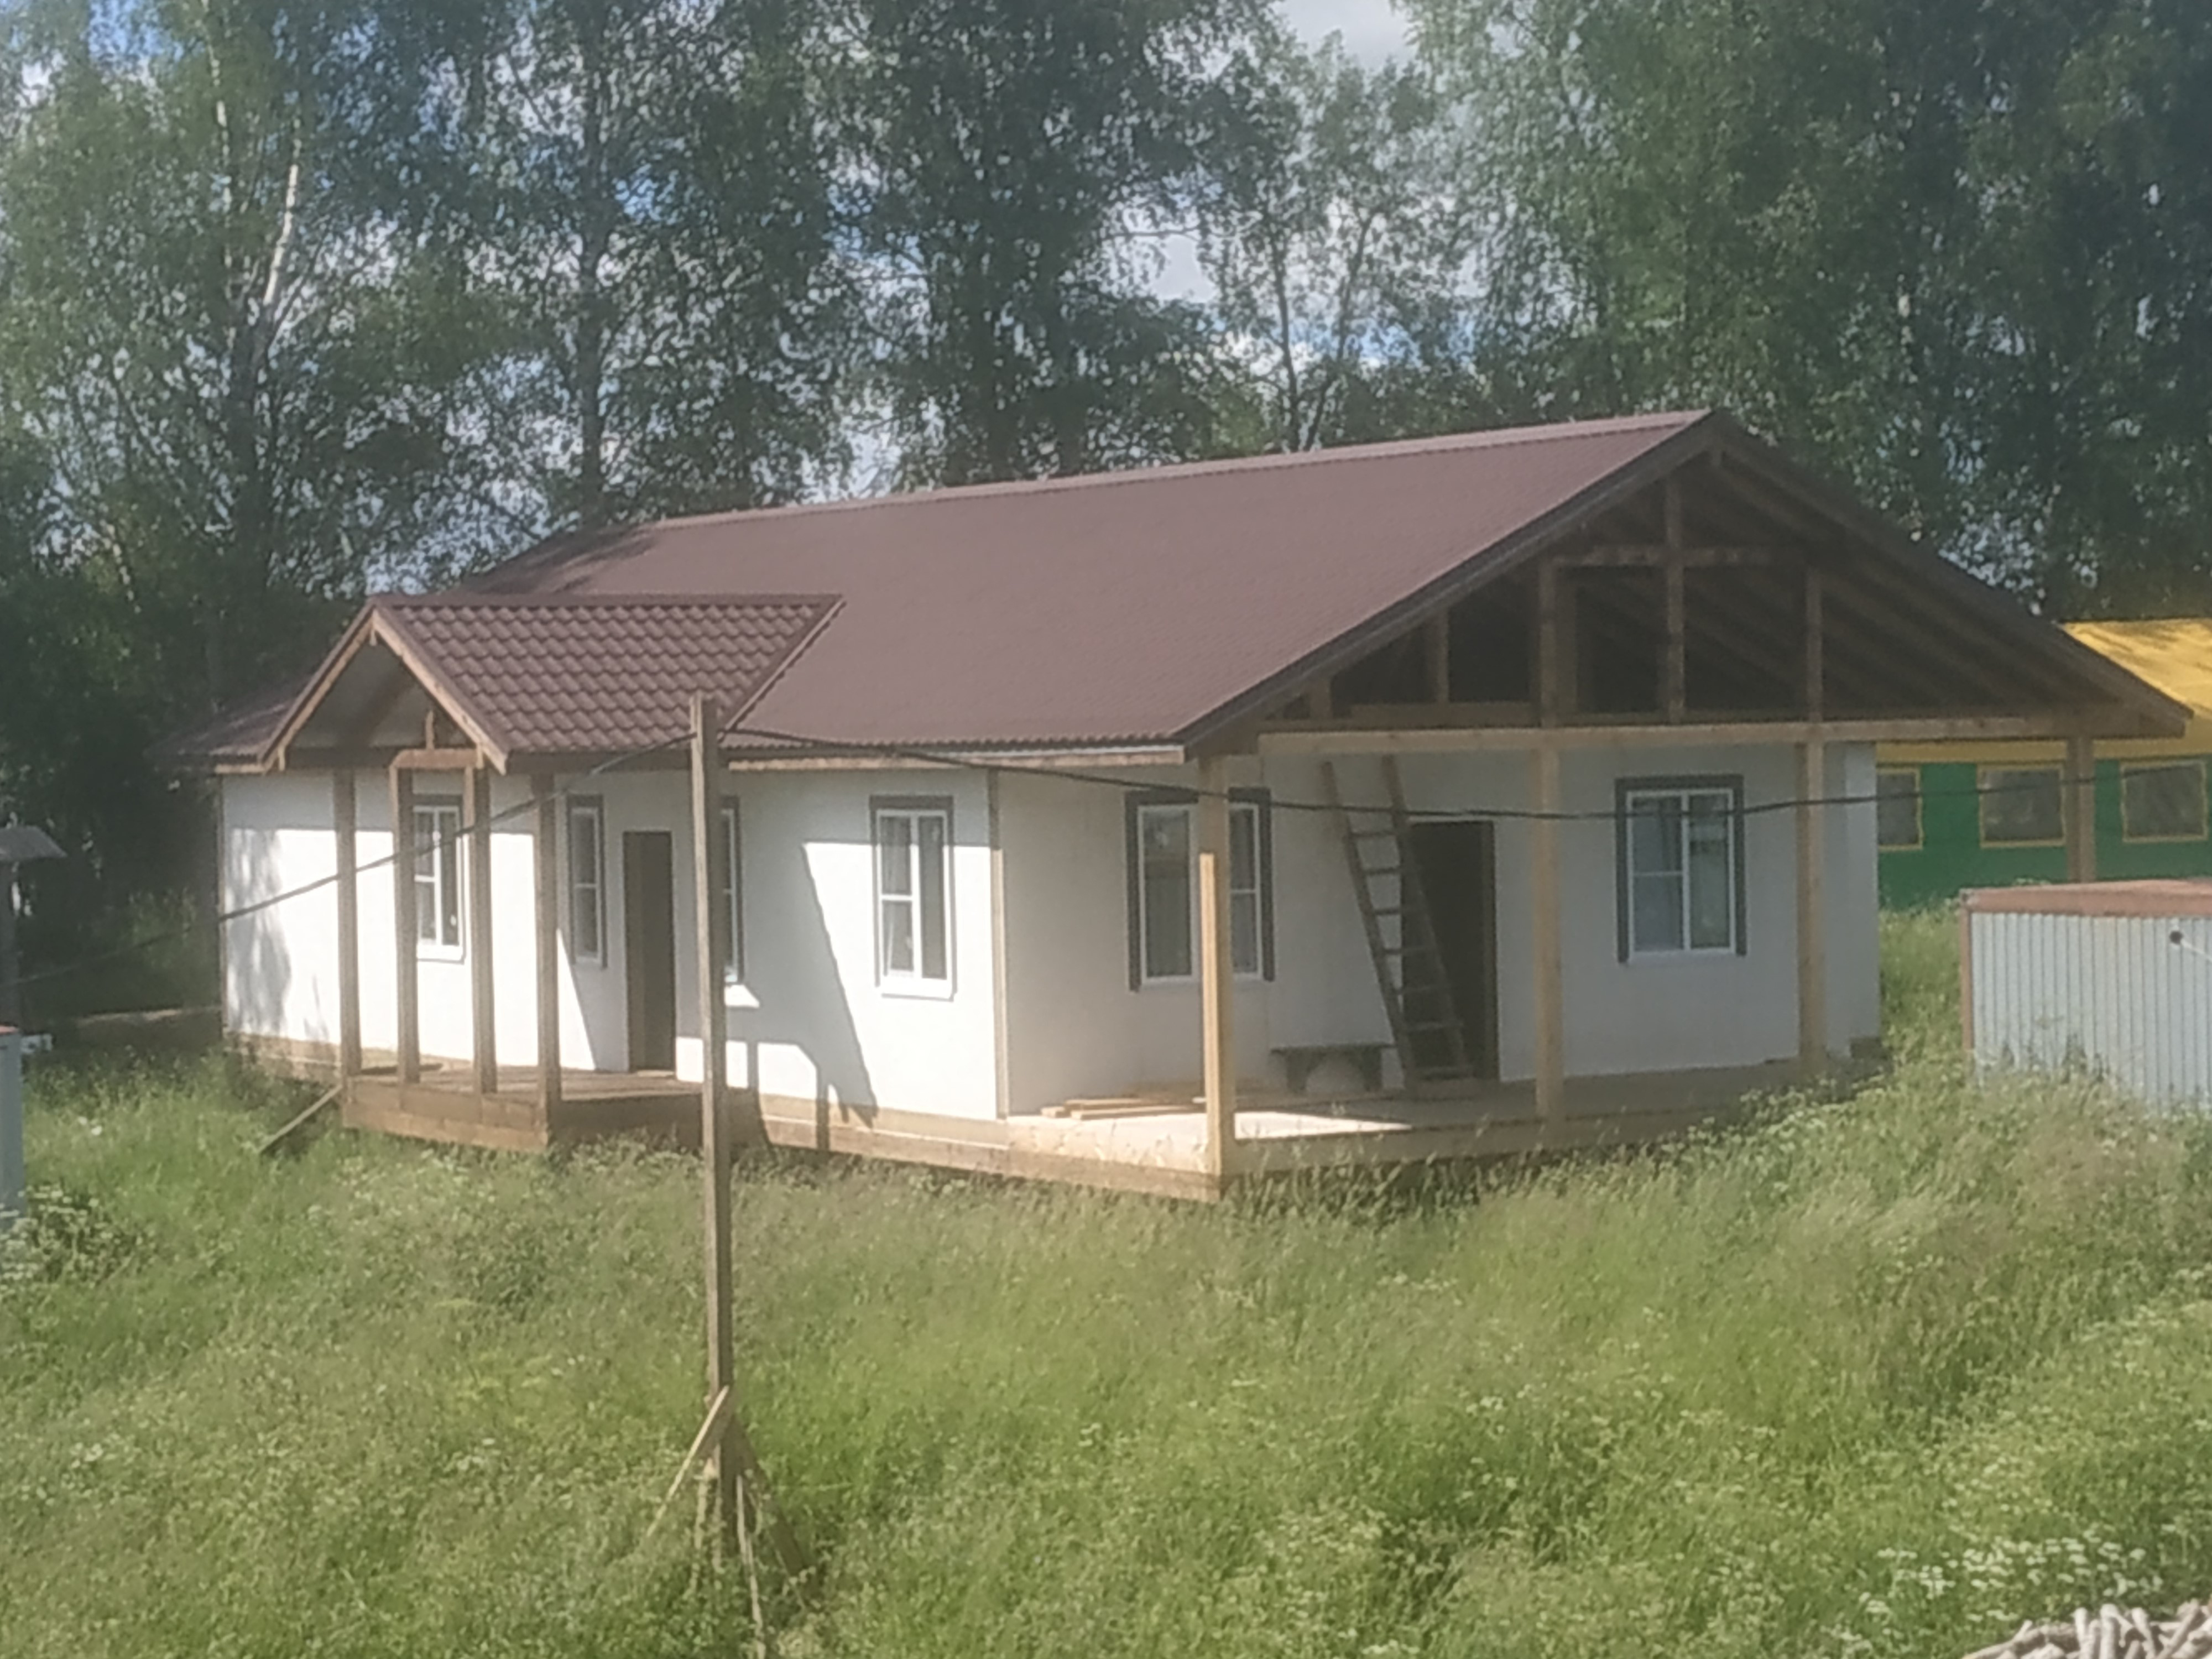 The roof is on the house for adults with disabilities in Davydovo.